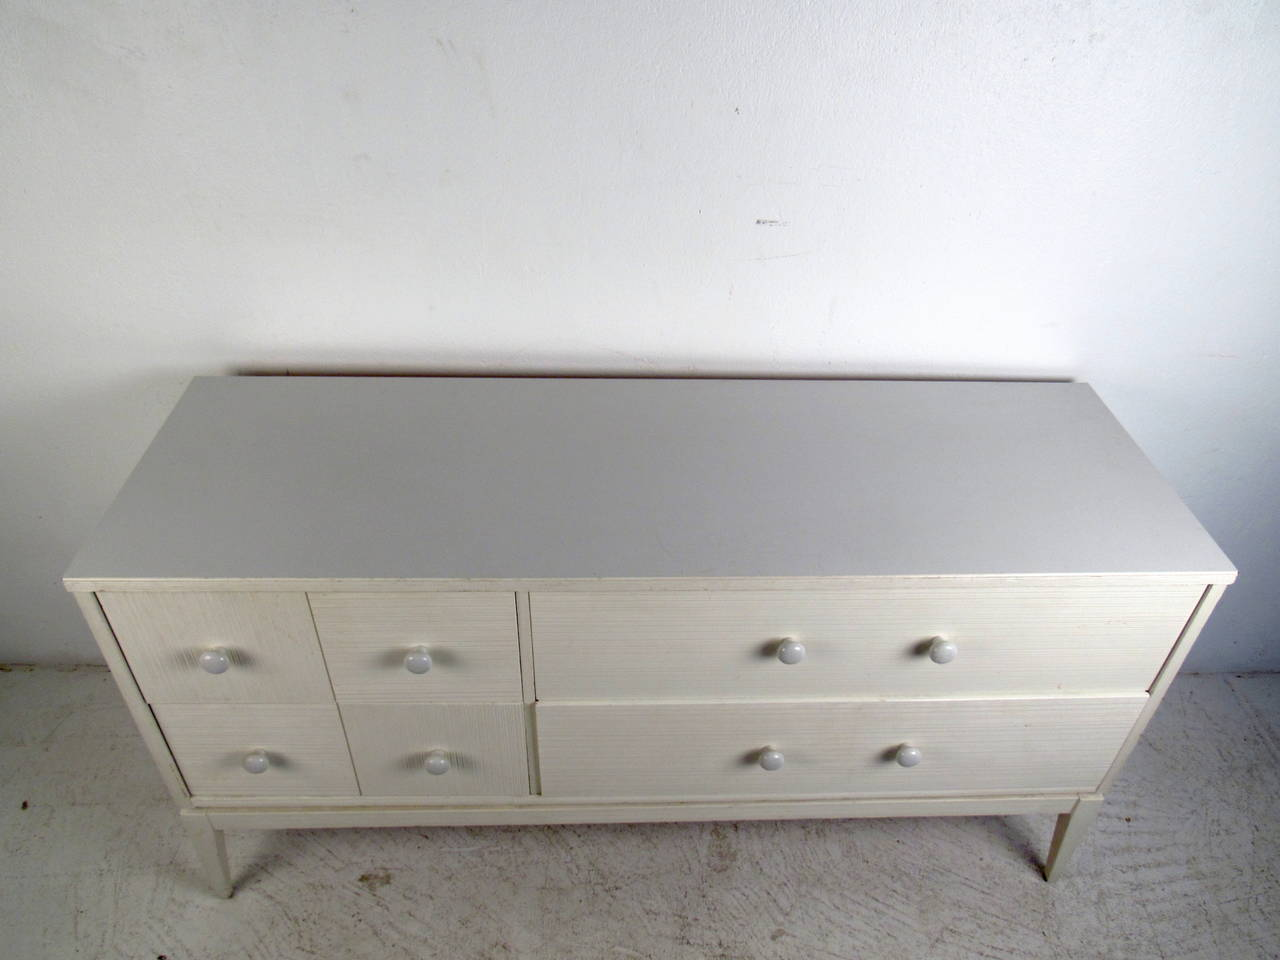 white fourdrawer low dresser by kroehler furniture 3 - Kroehler Furniture